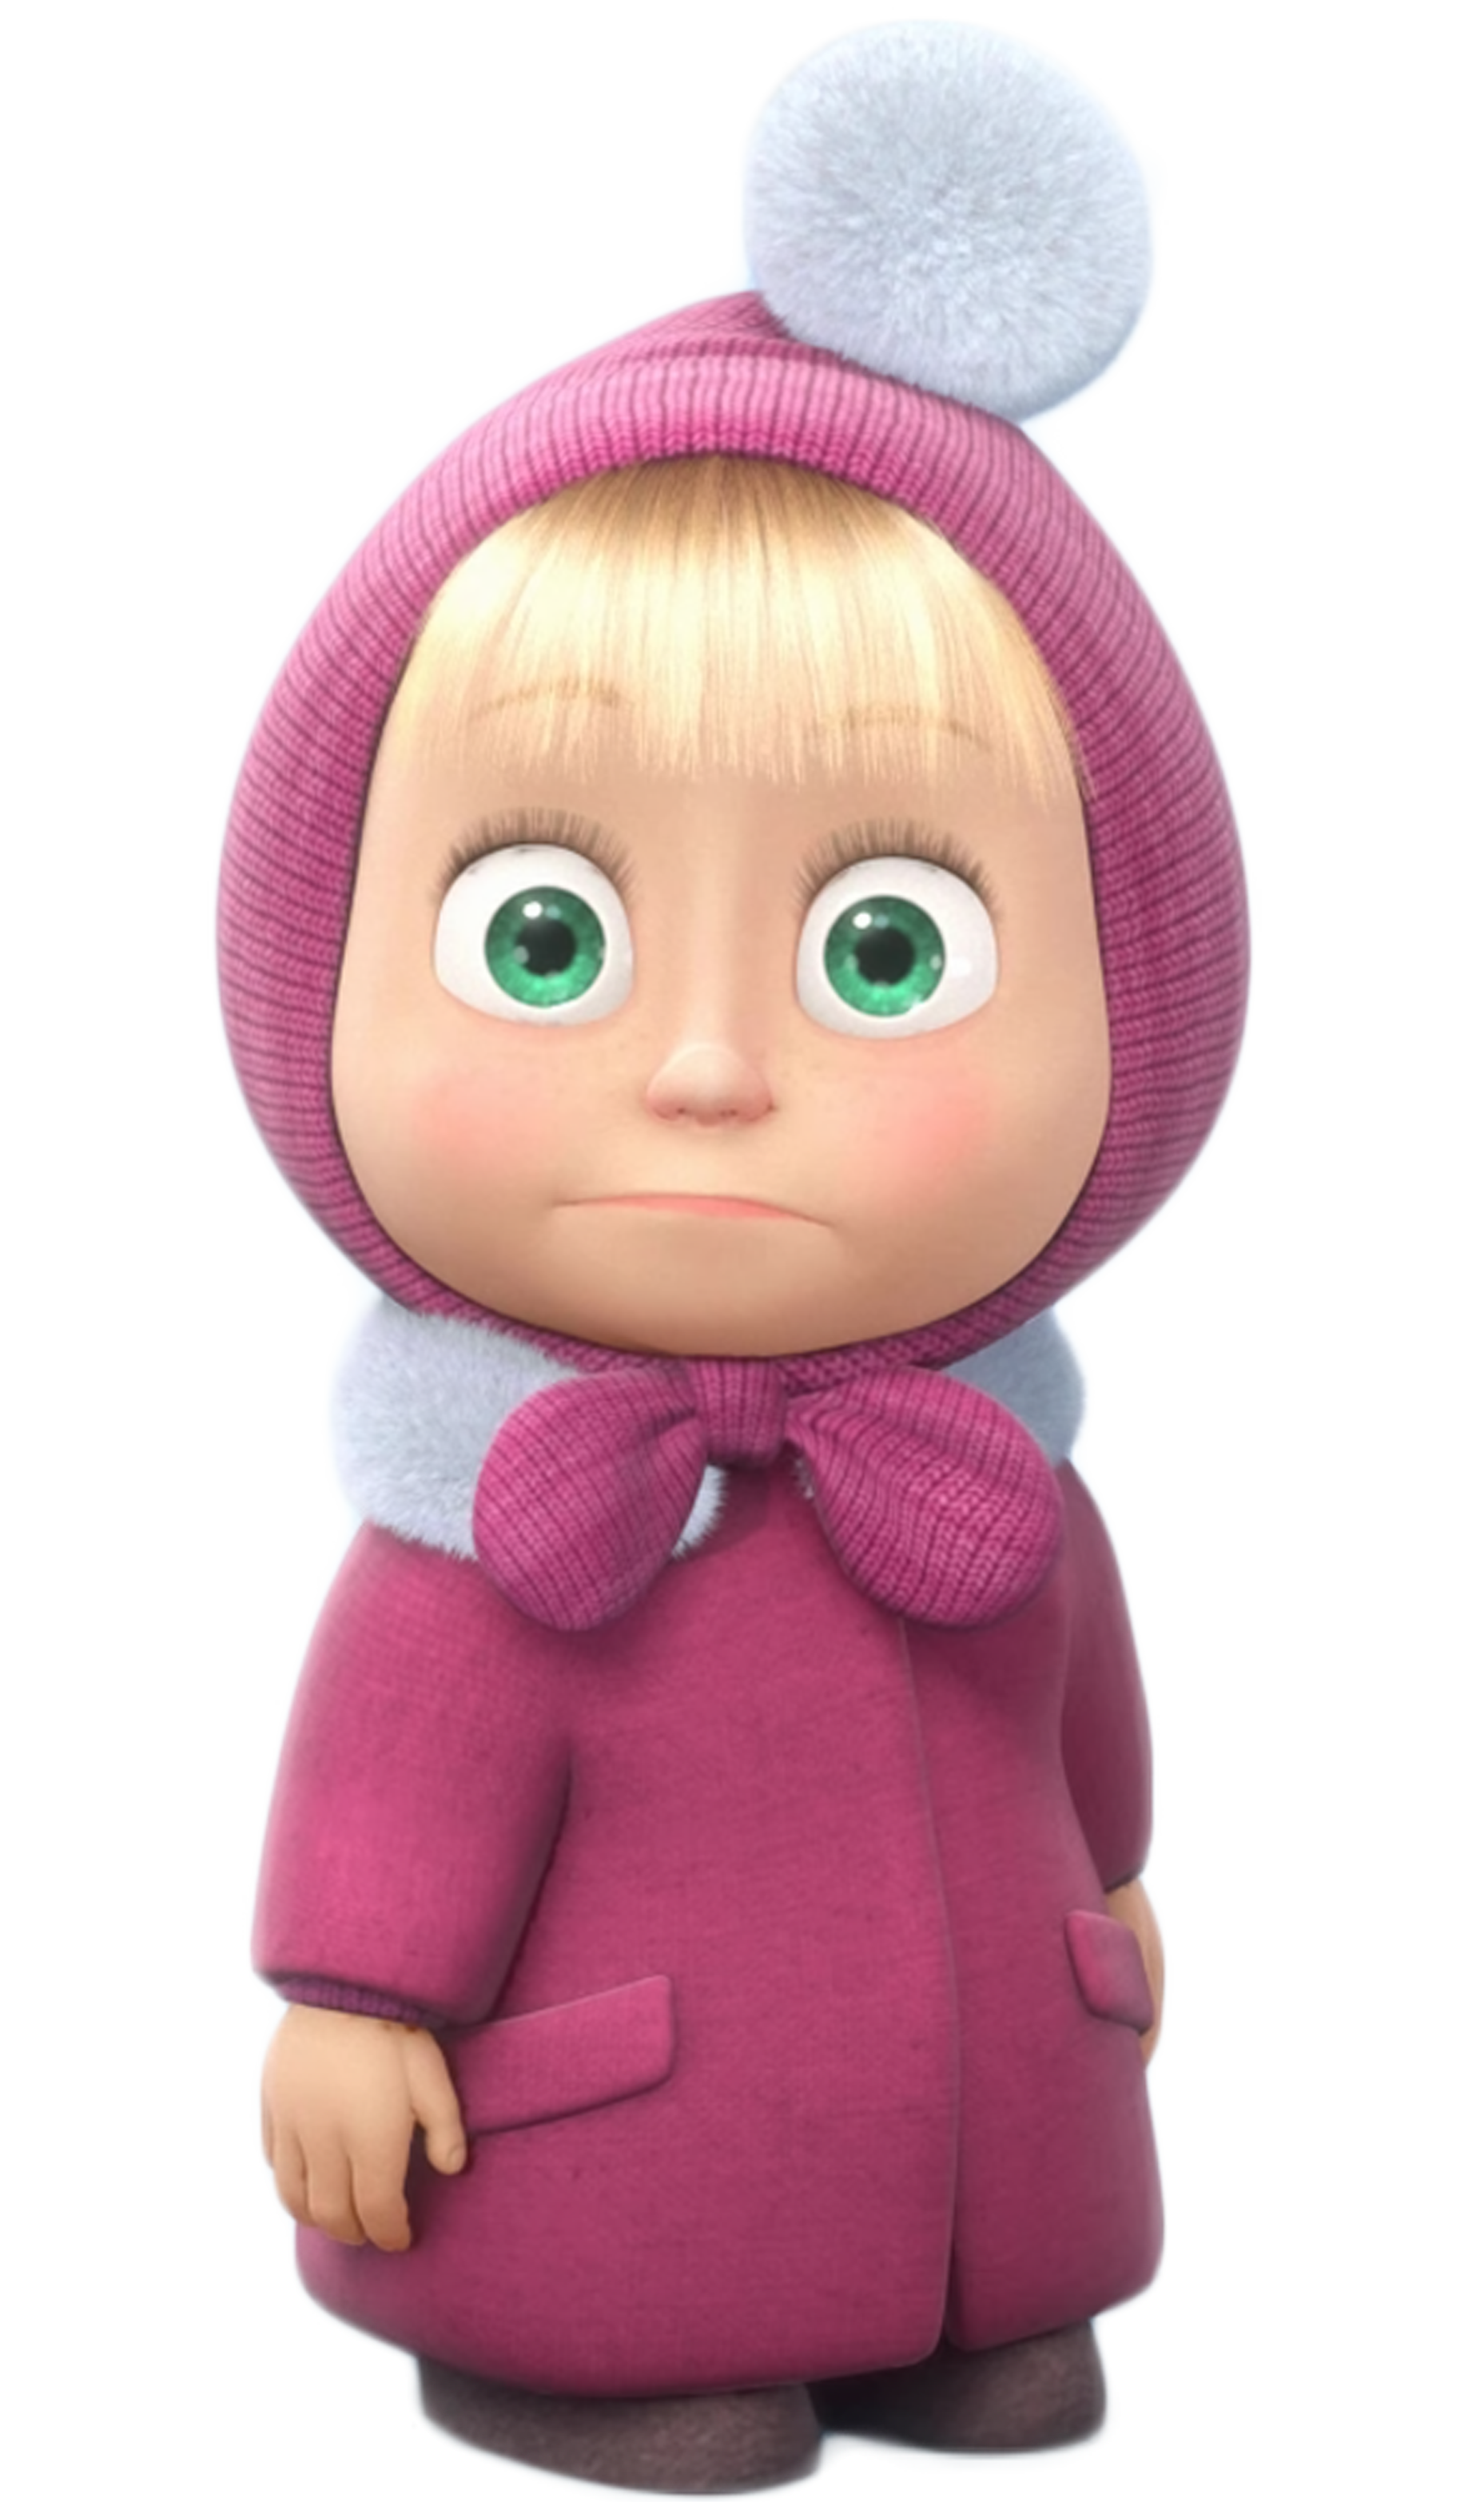 Masha And The Bear Transparent Png Clip Disney Disney Sanati Illustrasyonlar